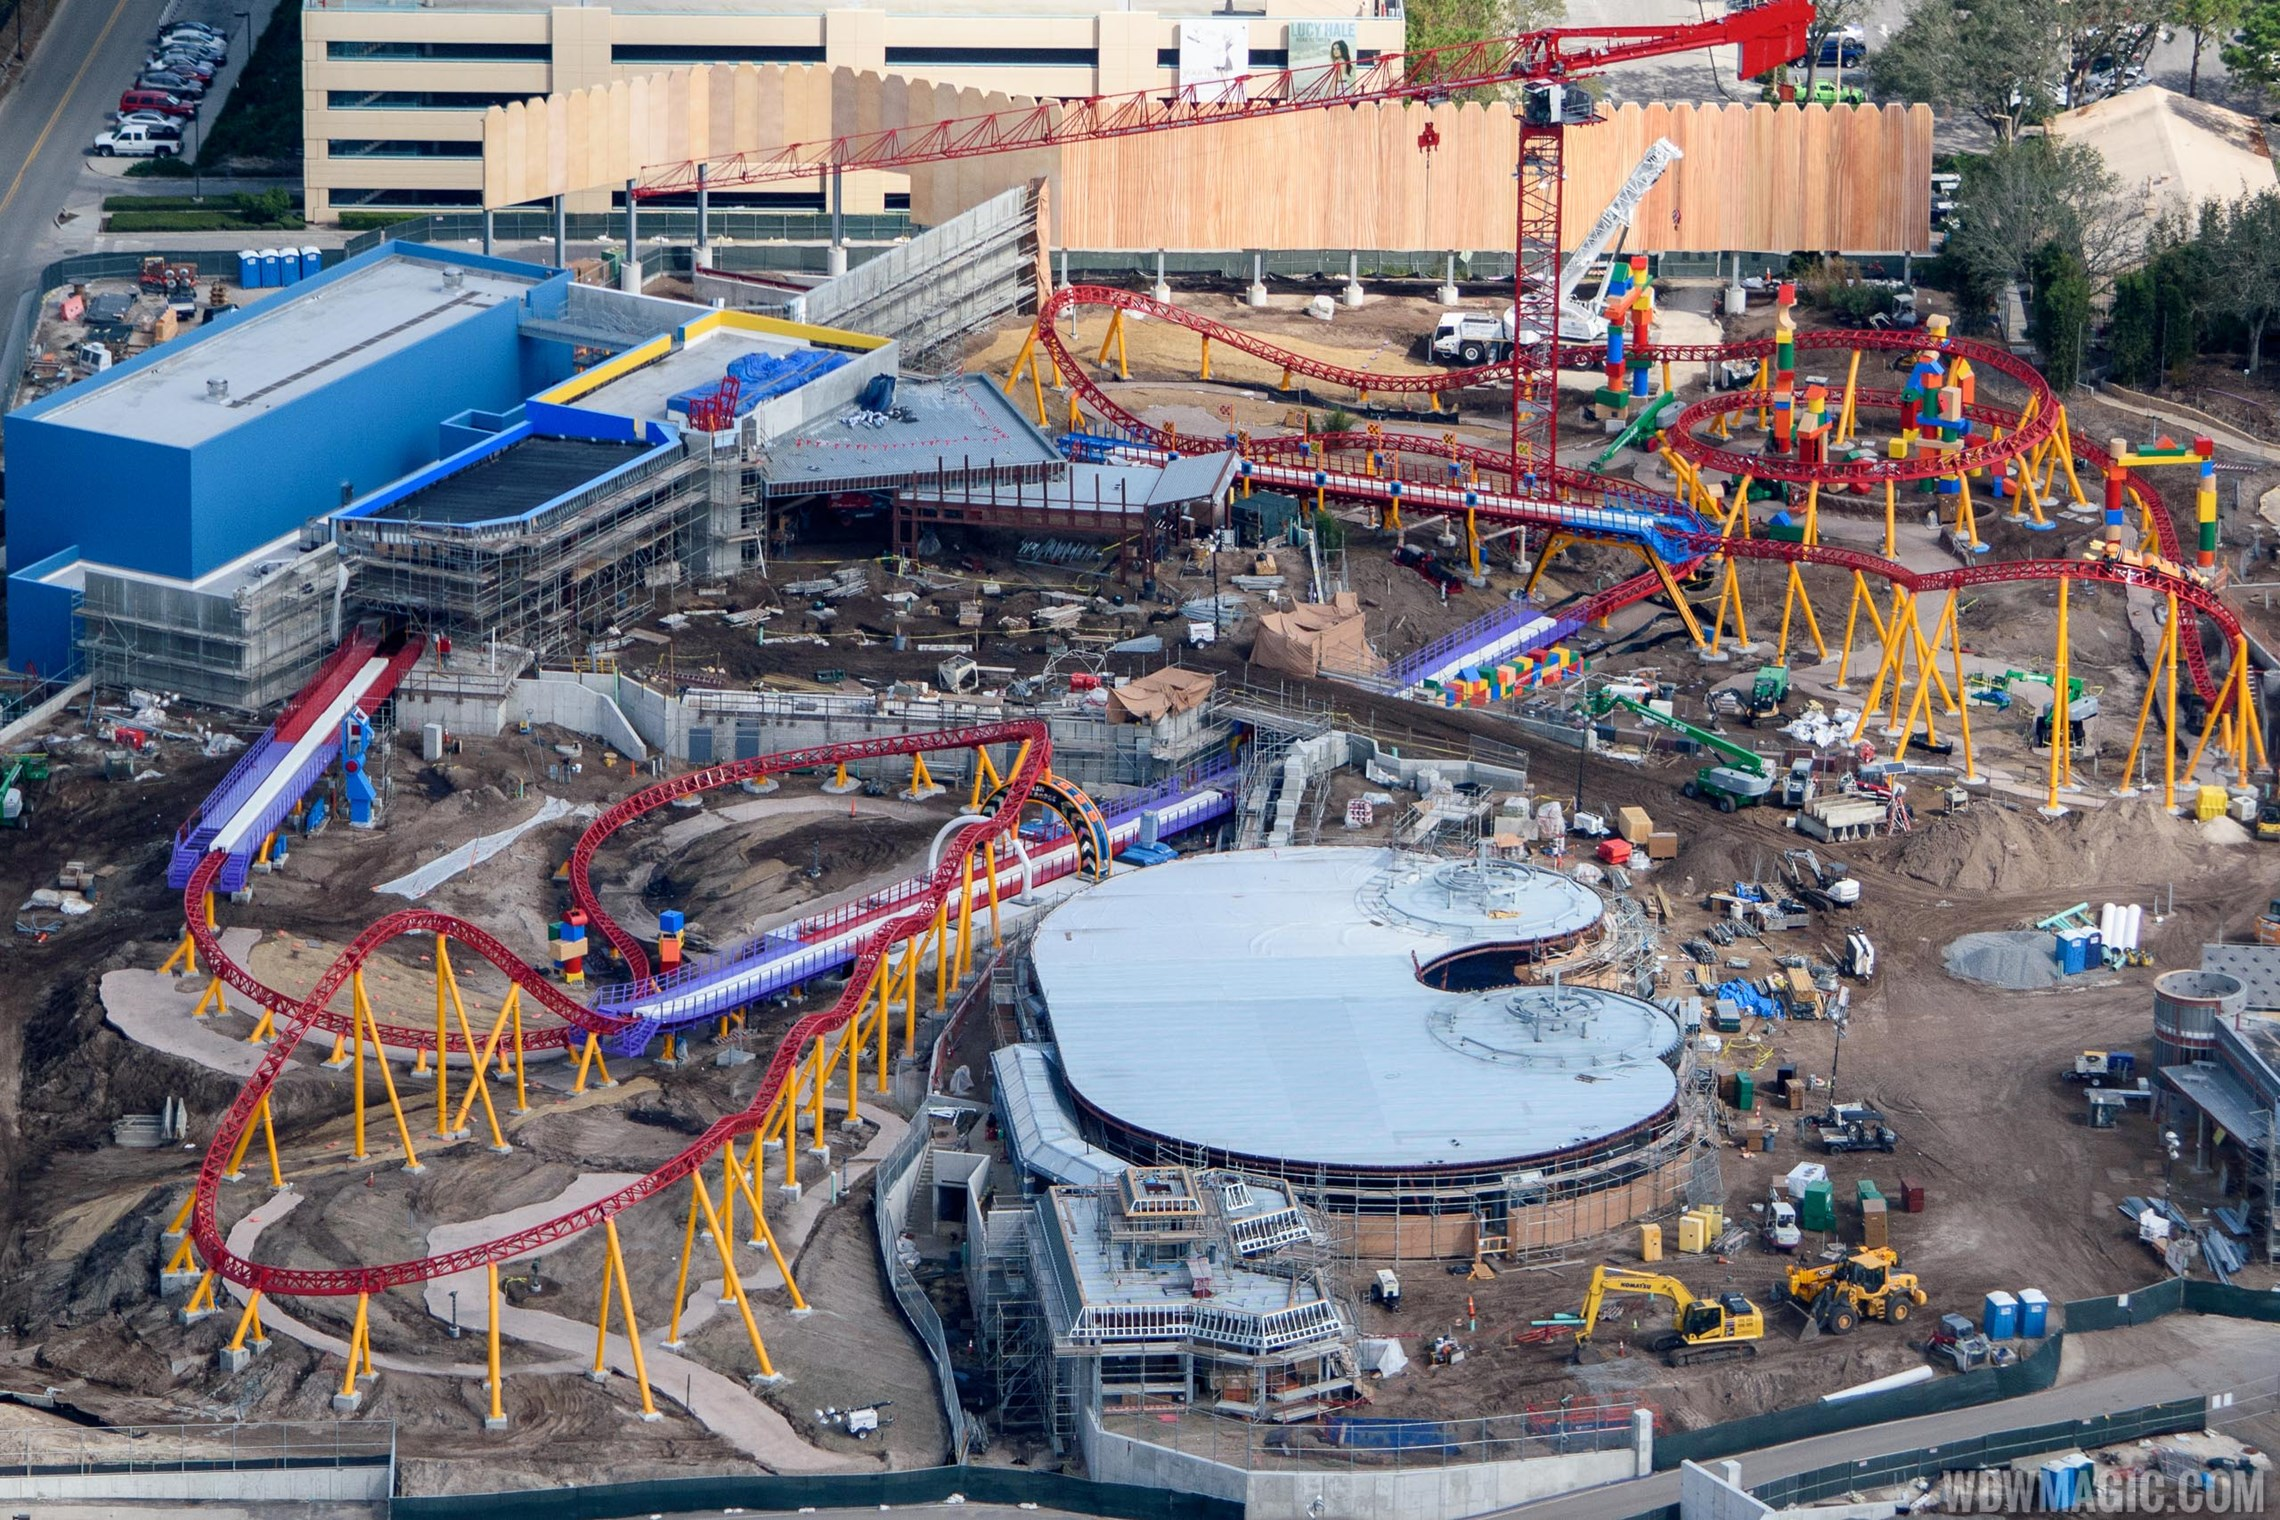 PHOTOS - Toy Story Land construction from the air